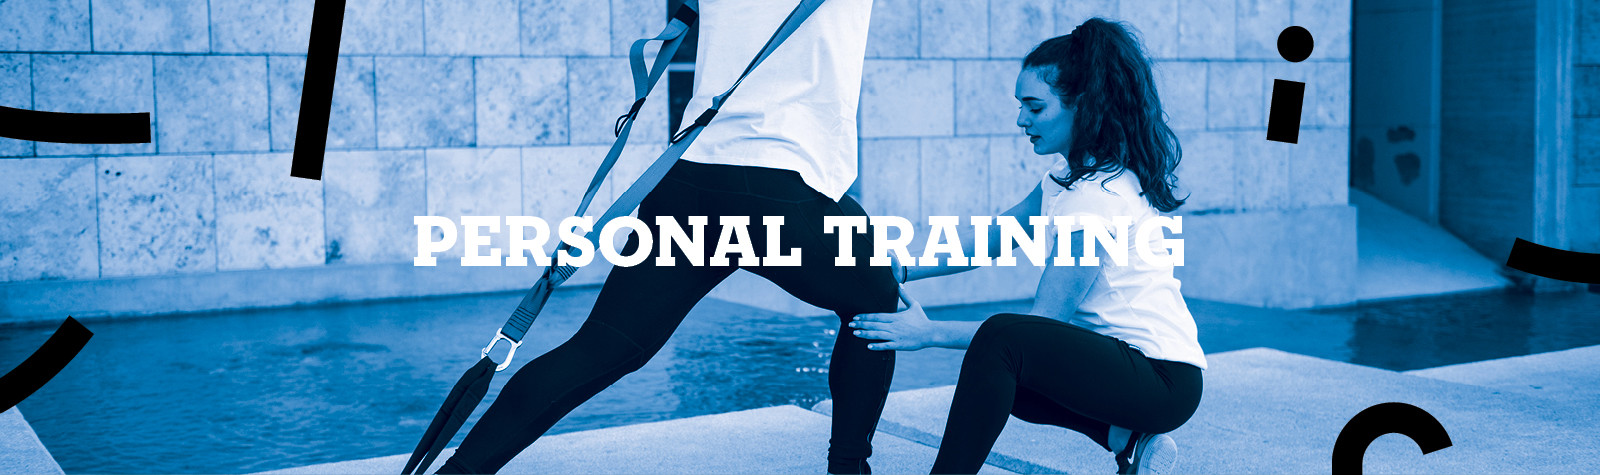 Personal Training Conference 27th International Health Fitness